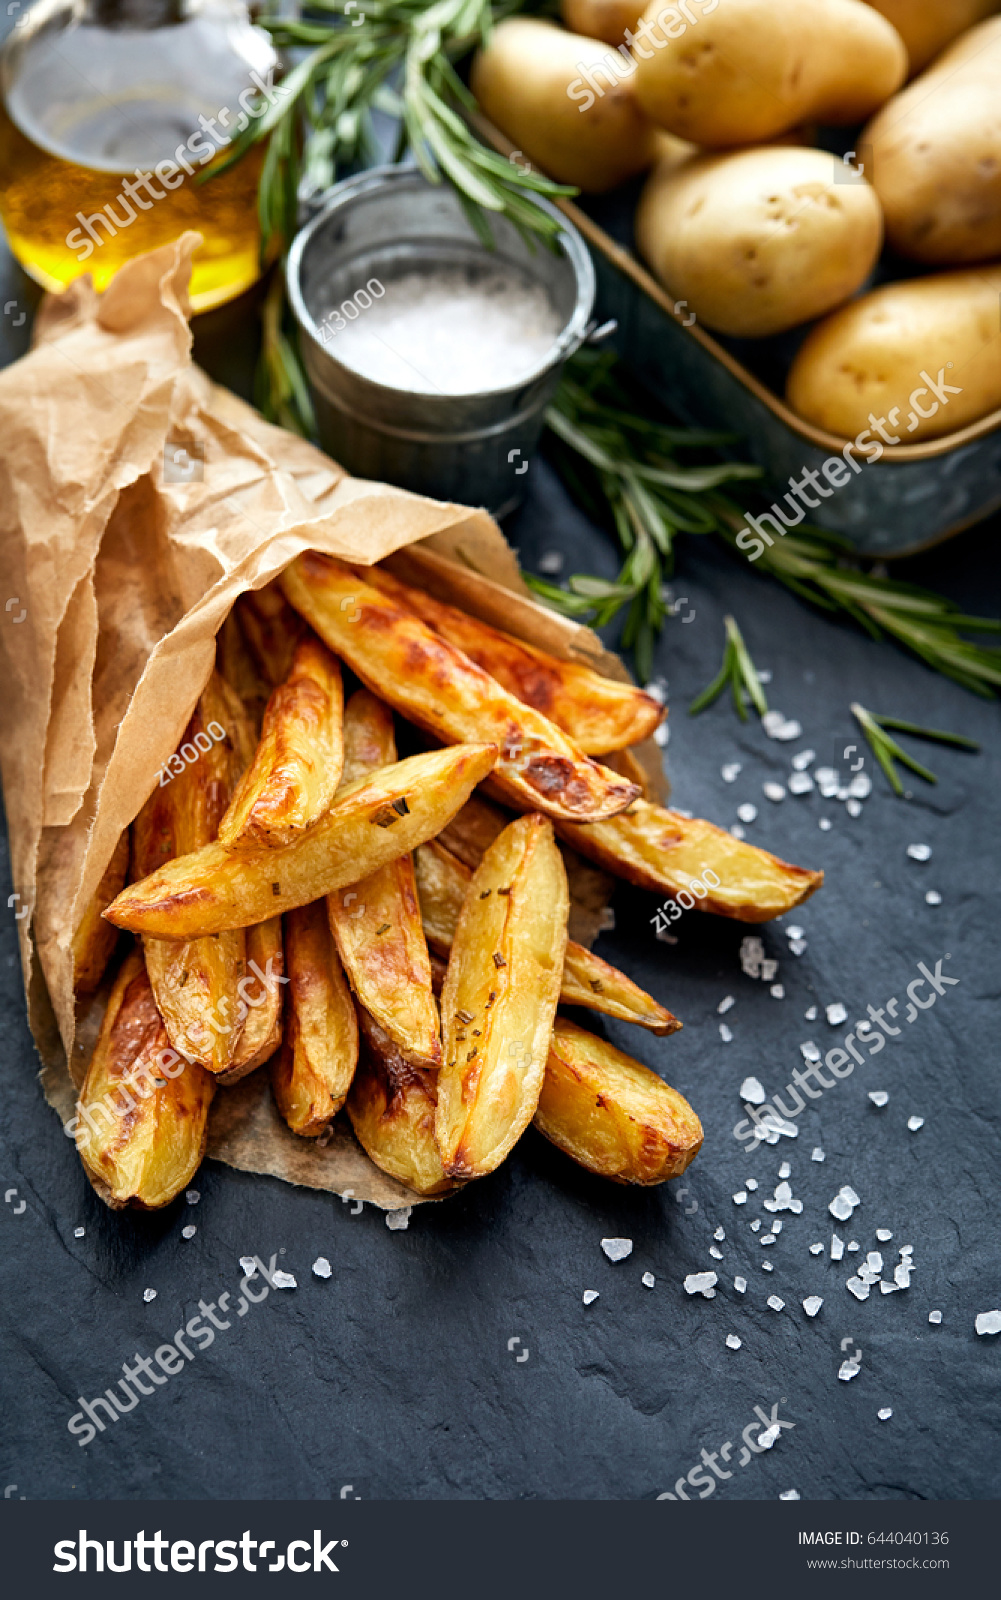 Baked potato fries addition sea salt stock photo 644040136 baked potato fries with addition sea salt and rosemary on a black background top view ccuart Image collections